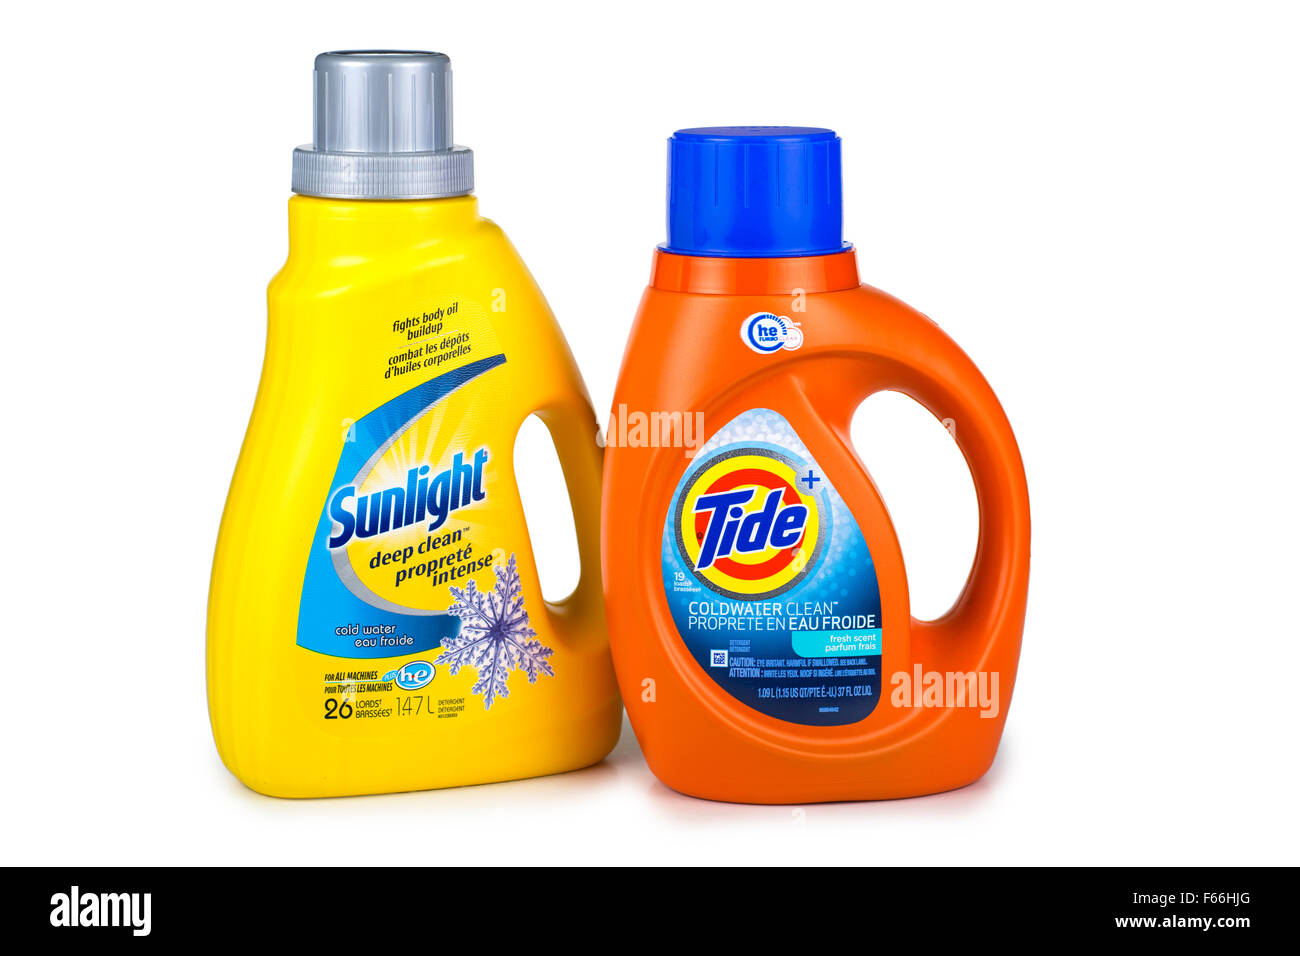 HE High Efficiency Laundry Detergents, for HE Washers, Low Sudsing Liquid Detergent - Stock Image